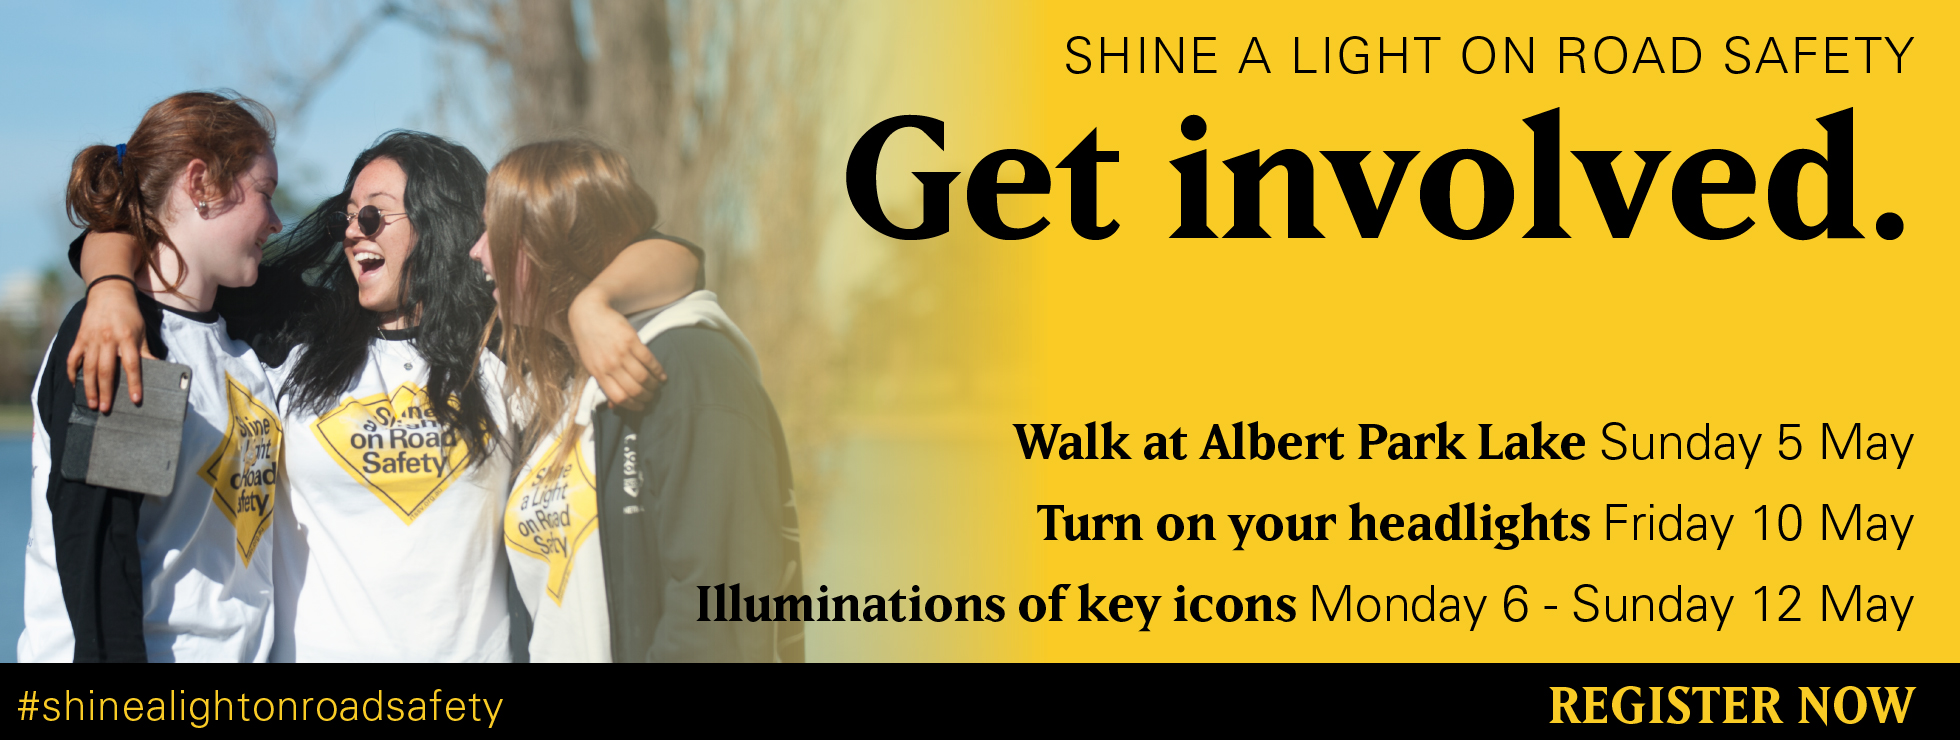 Shine a Light on road safety, get involved